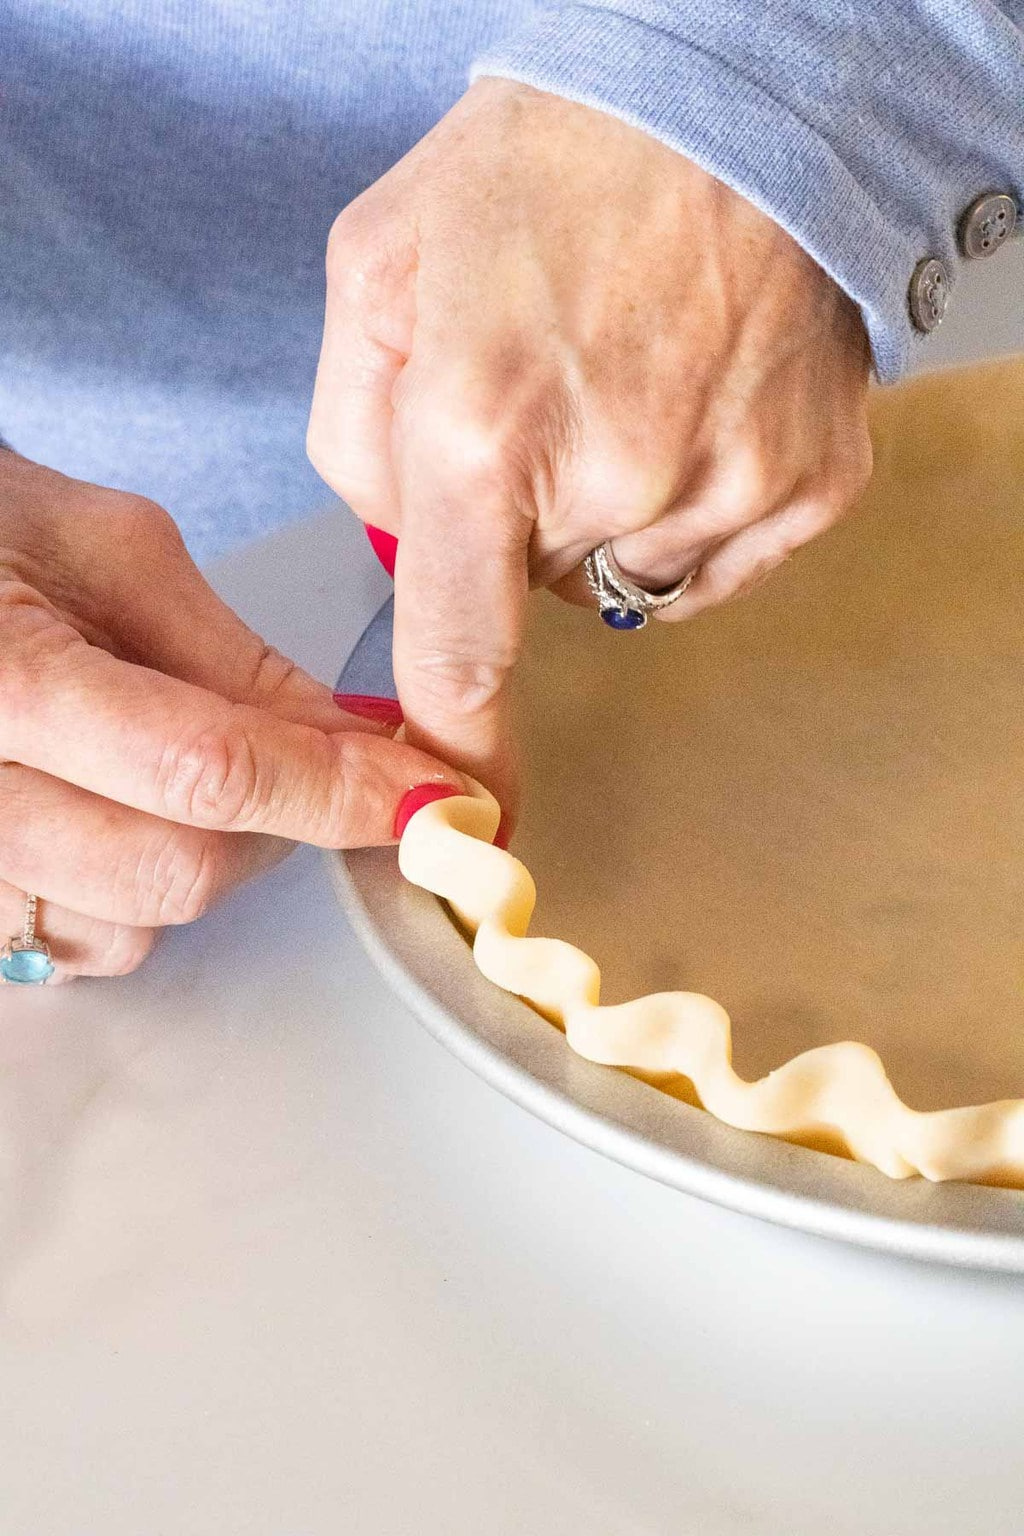 Vertical closeup photo of a person hand crimping the store-bought crust for preparing an Annie's Easy Apple Pie.